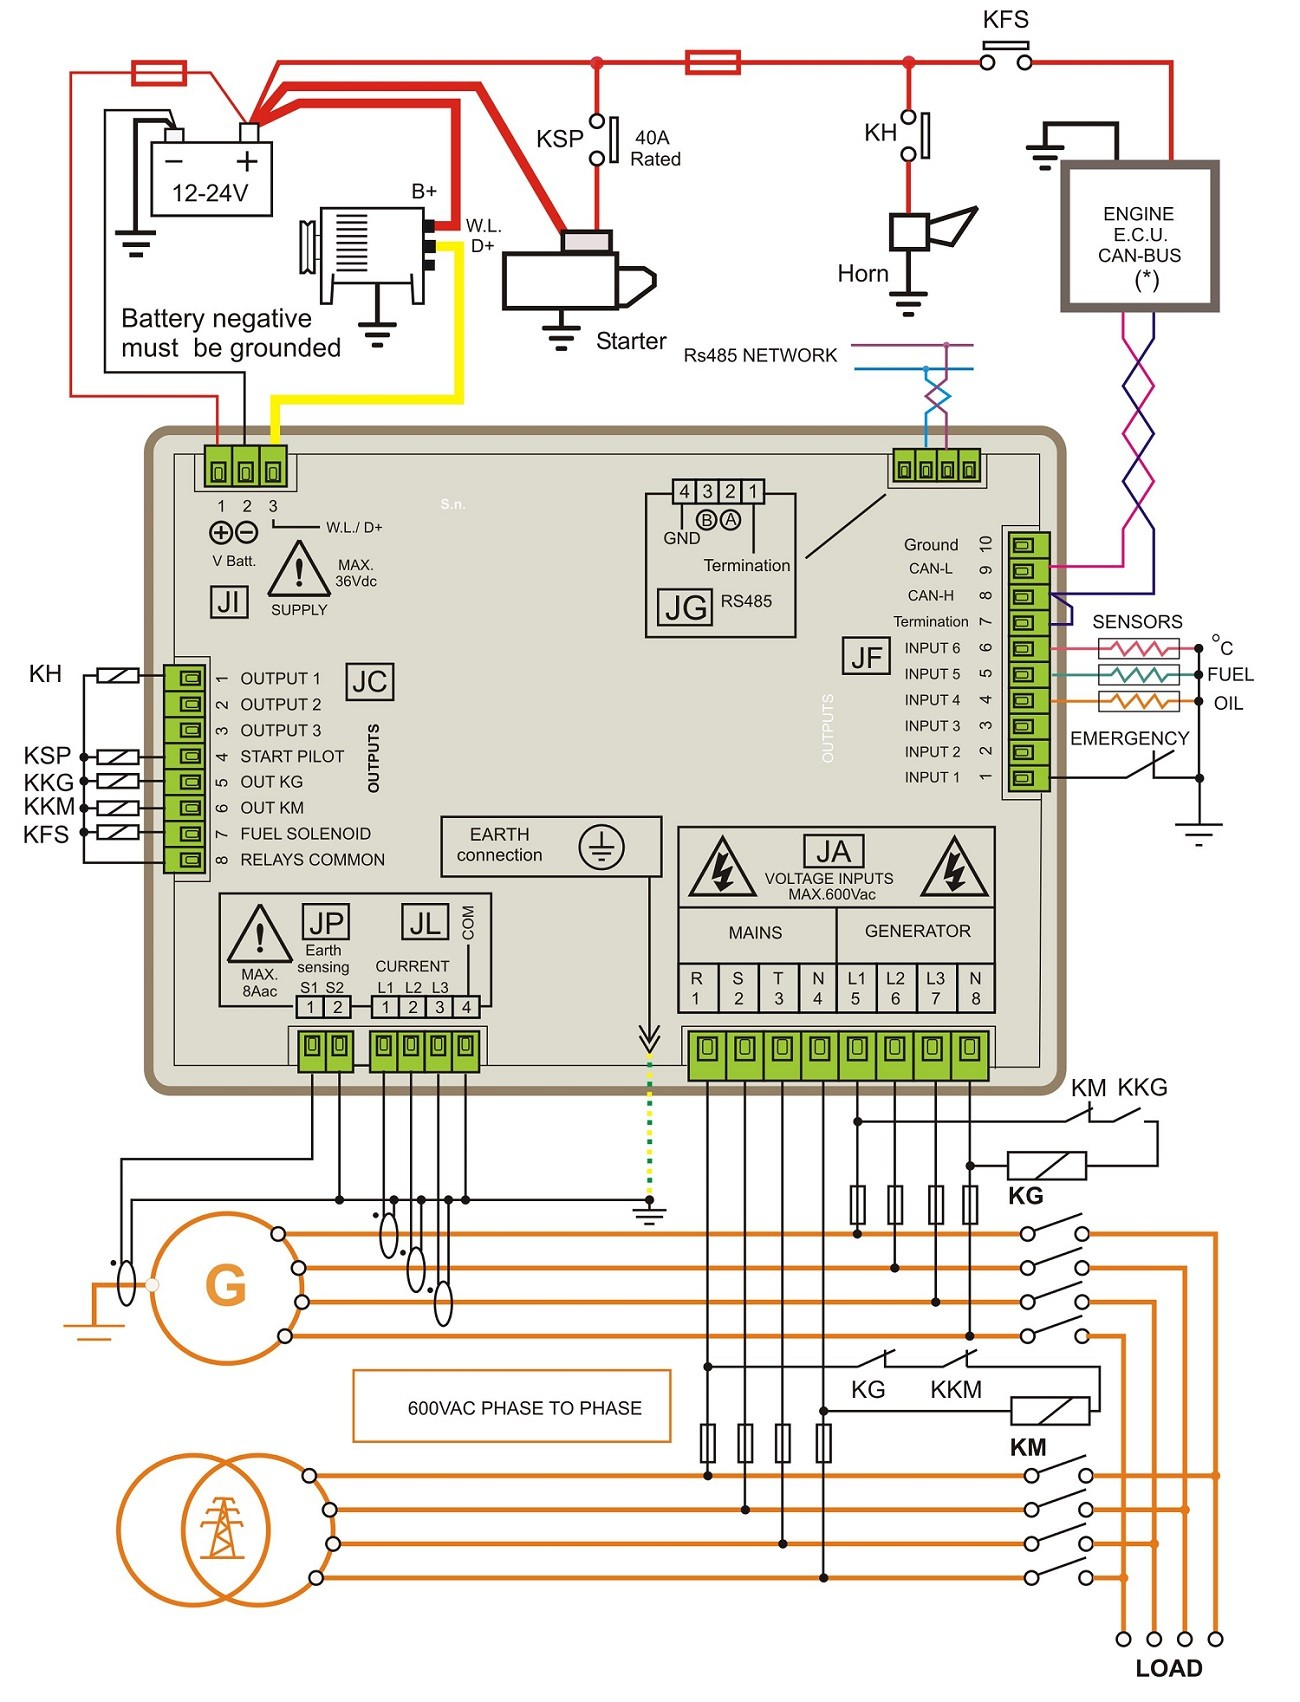 Home generator wiring diagram ponent steel generator wiring diagram home generator wiring diagram generator control panel manufacturers genset controller of home generator wiring diagram swarovskicordoba Image collections